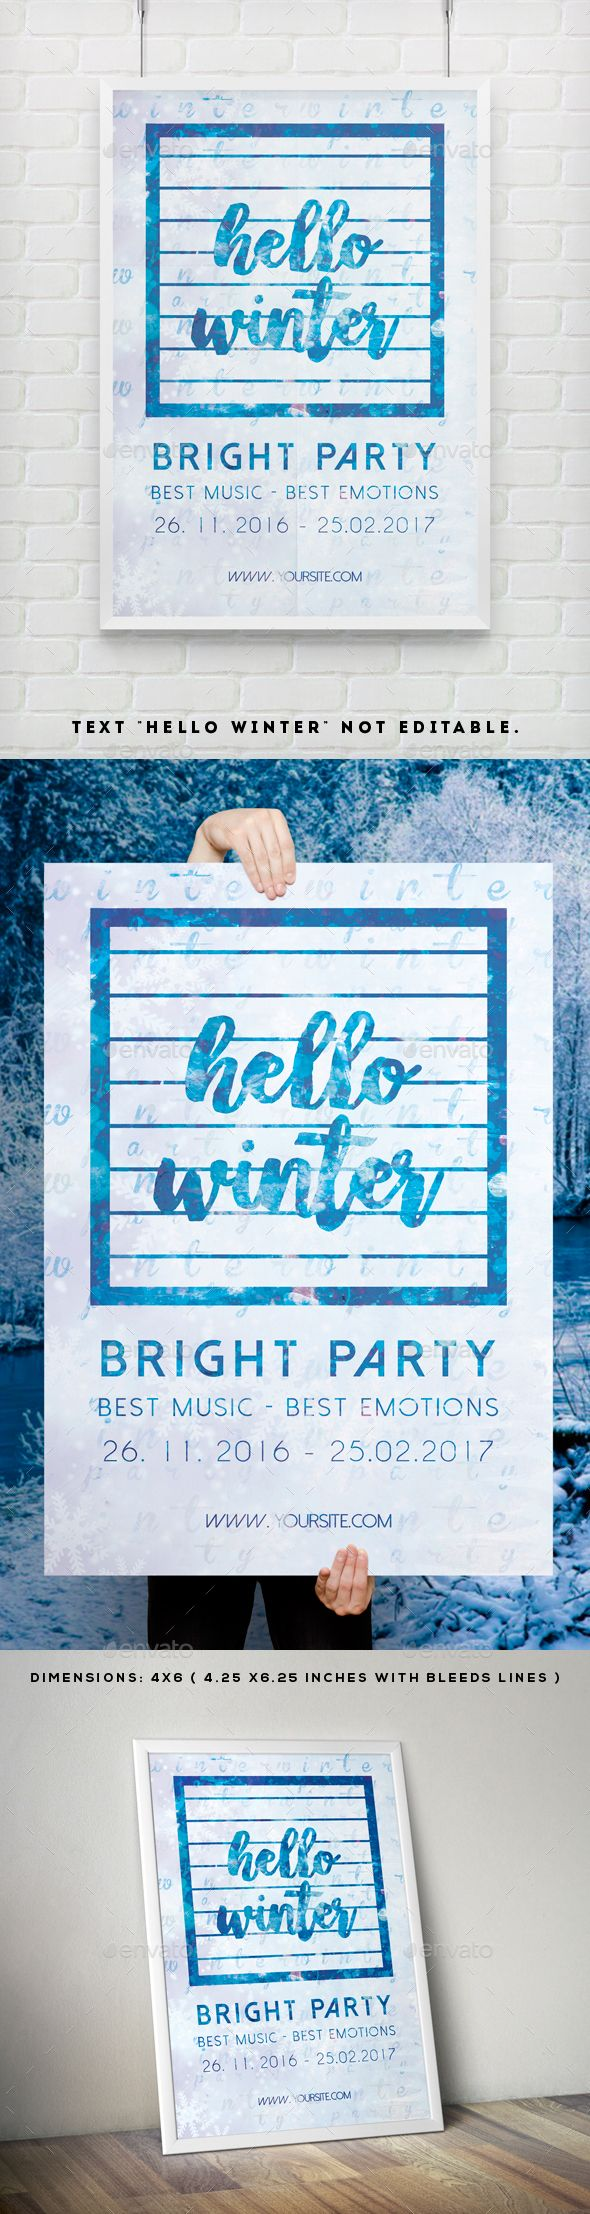 Poster design dimensions - Hello Winter Party Flyer Poster Template